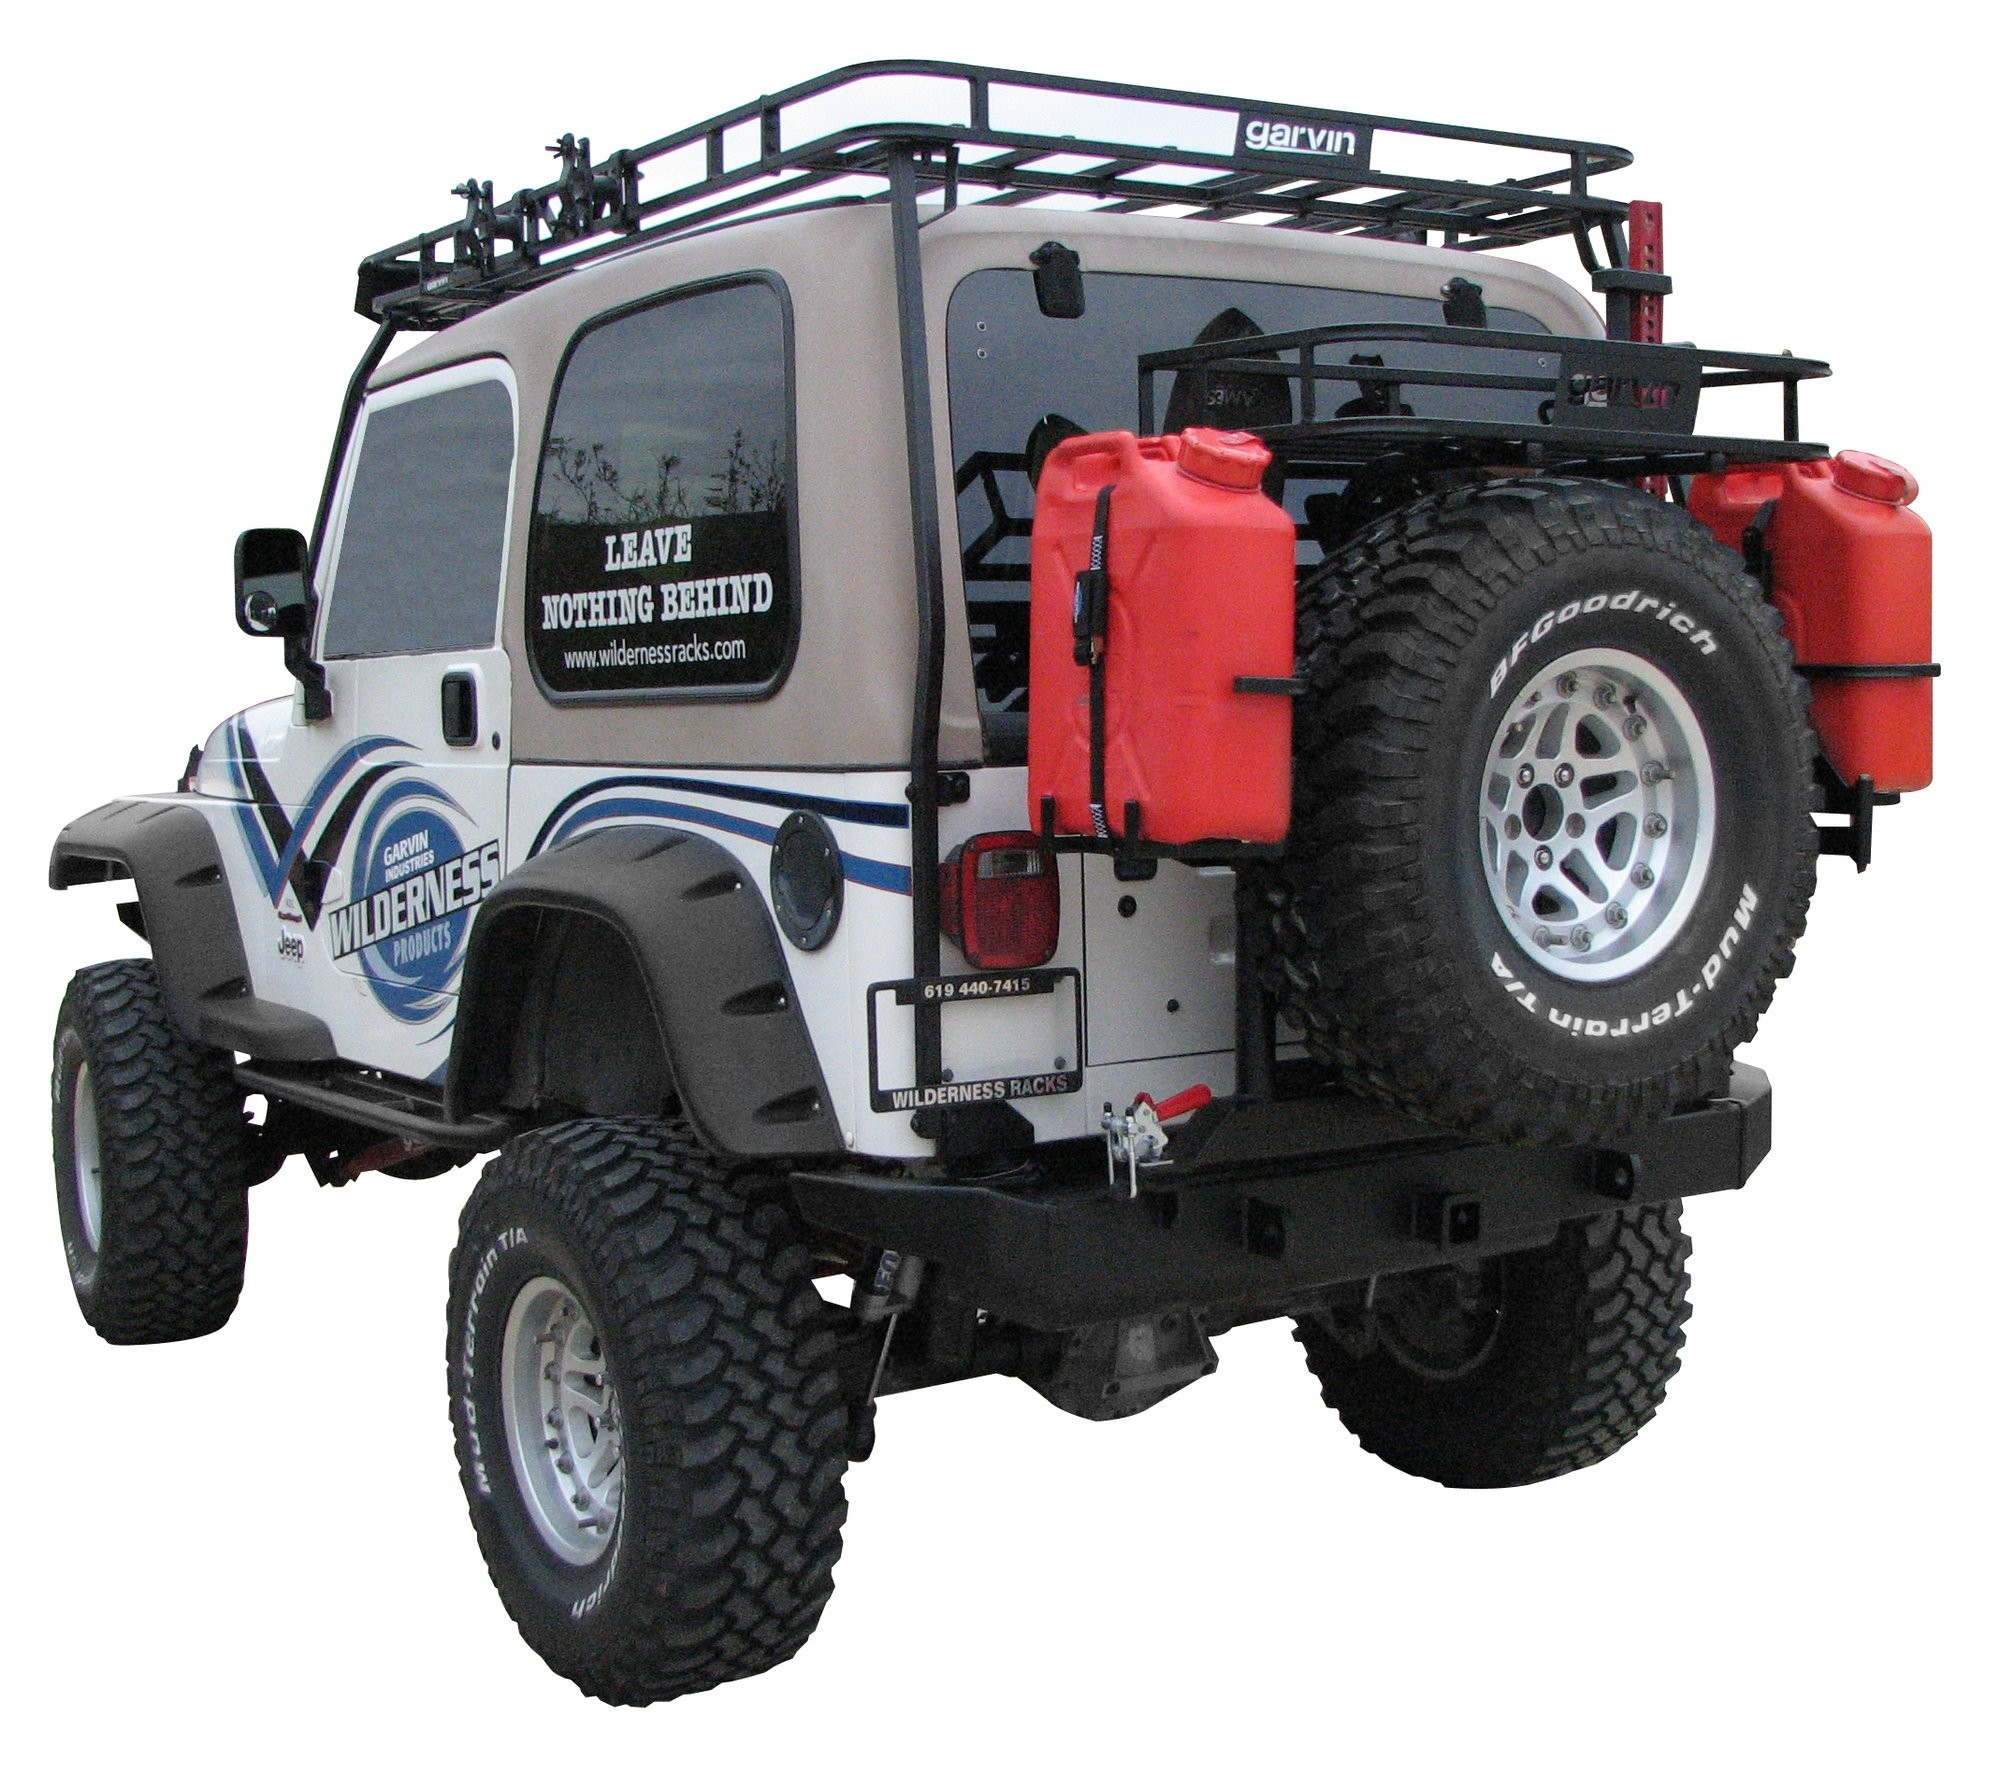 1995 Jeep Wrangler Parts Diagram Garvin G2 Series Rear Bumper With Swing  Out Tire Carrier For